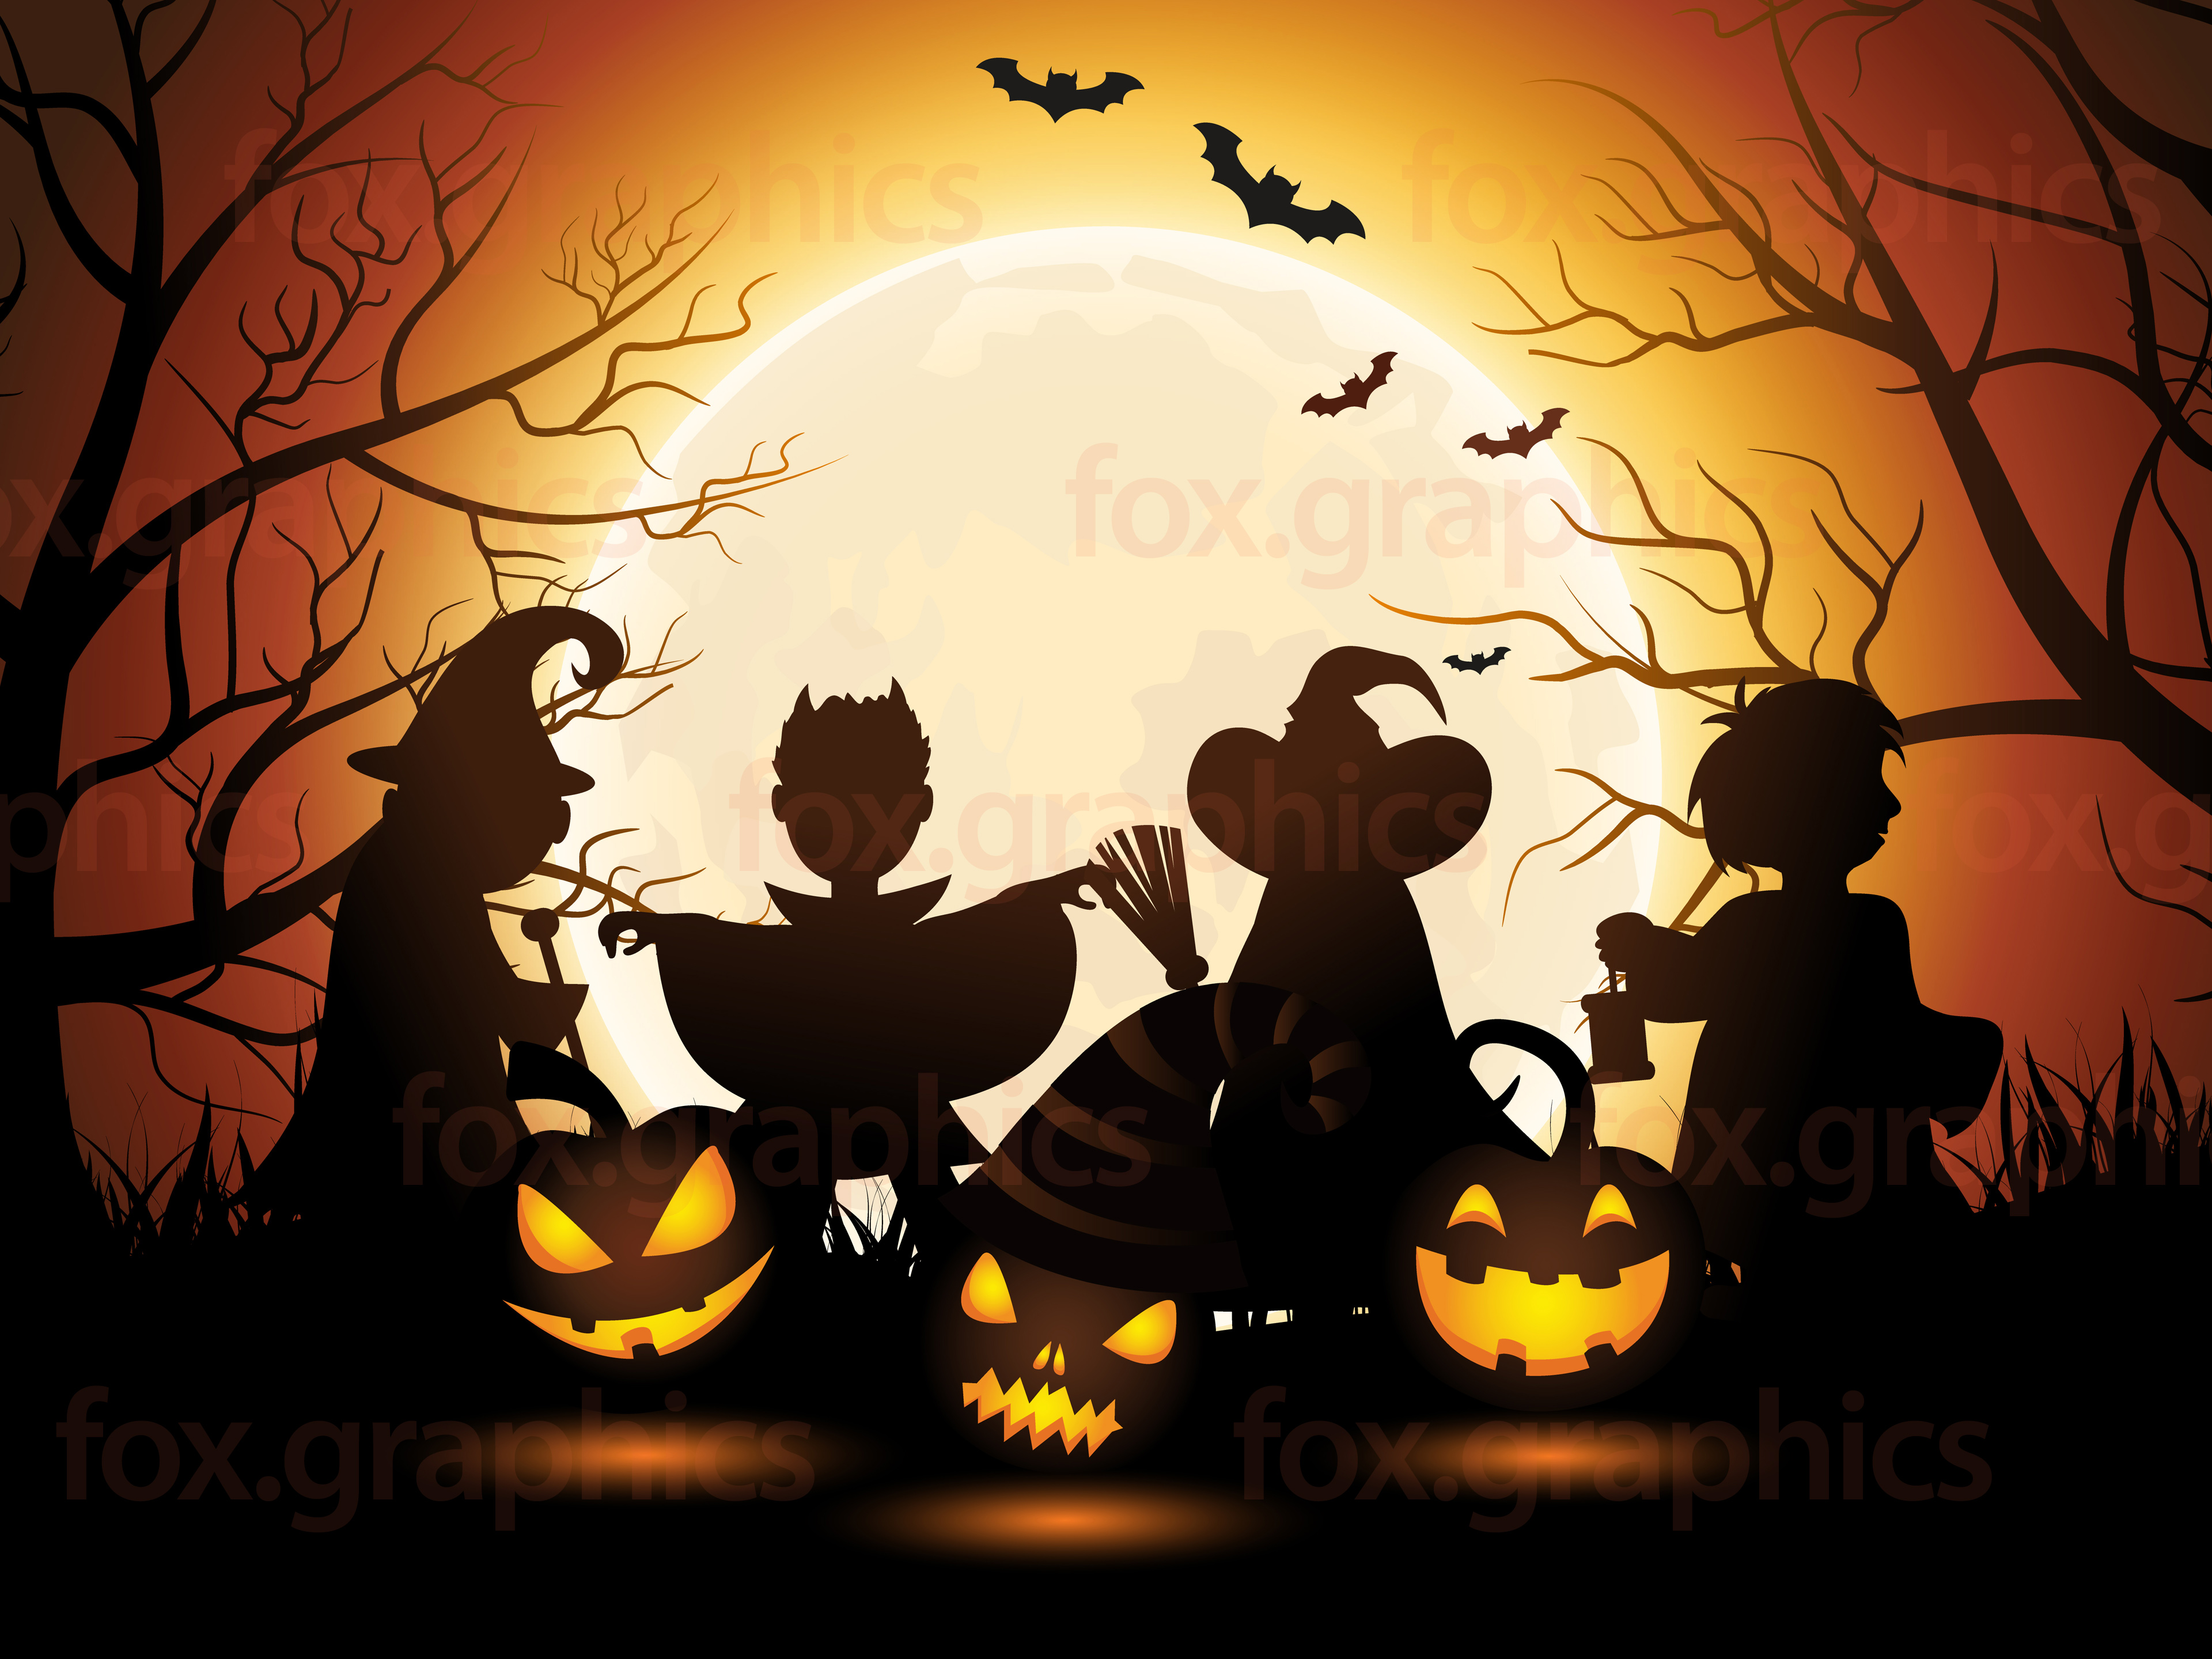 Halloween Vector  Fox Graphics PPT Backgrounds